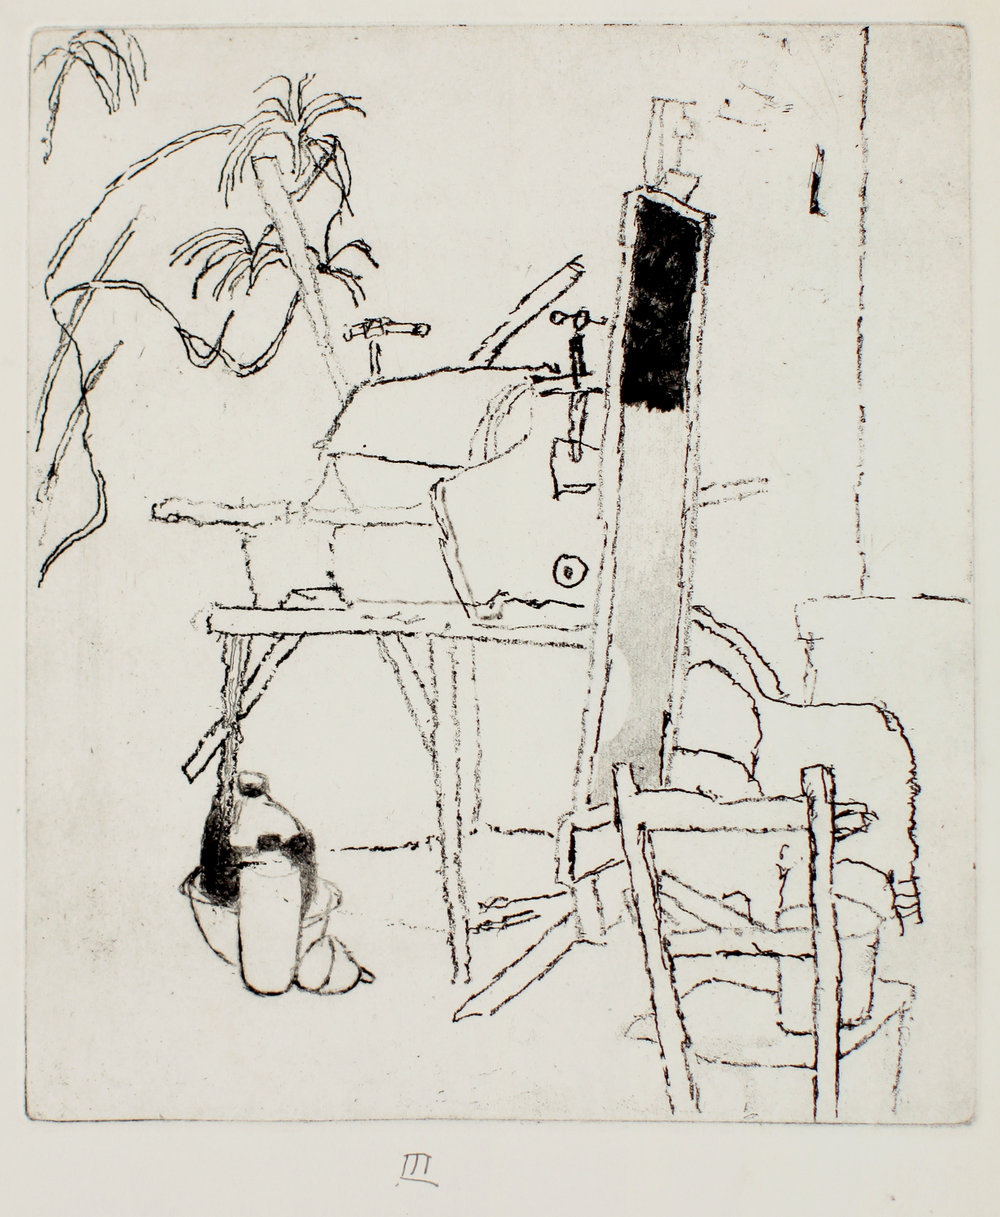 1990s_Studio_with_Etching_-Press_soft_ground_etching_on_paper_15x11in_image_11x10in_WPF446.jpg